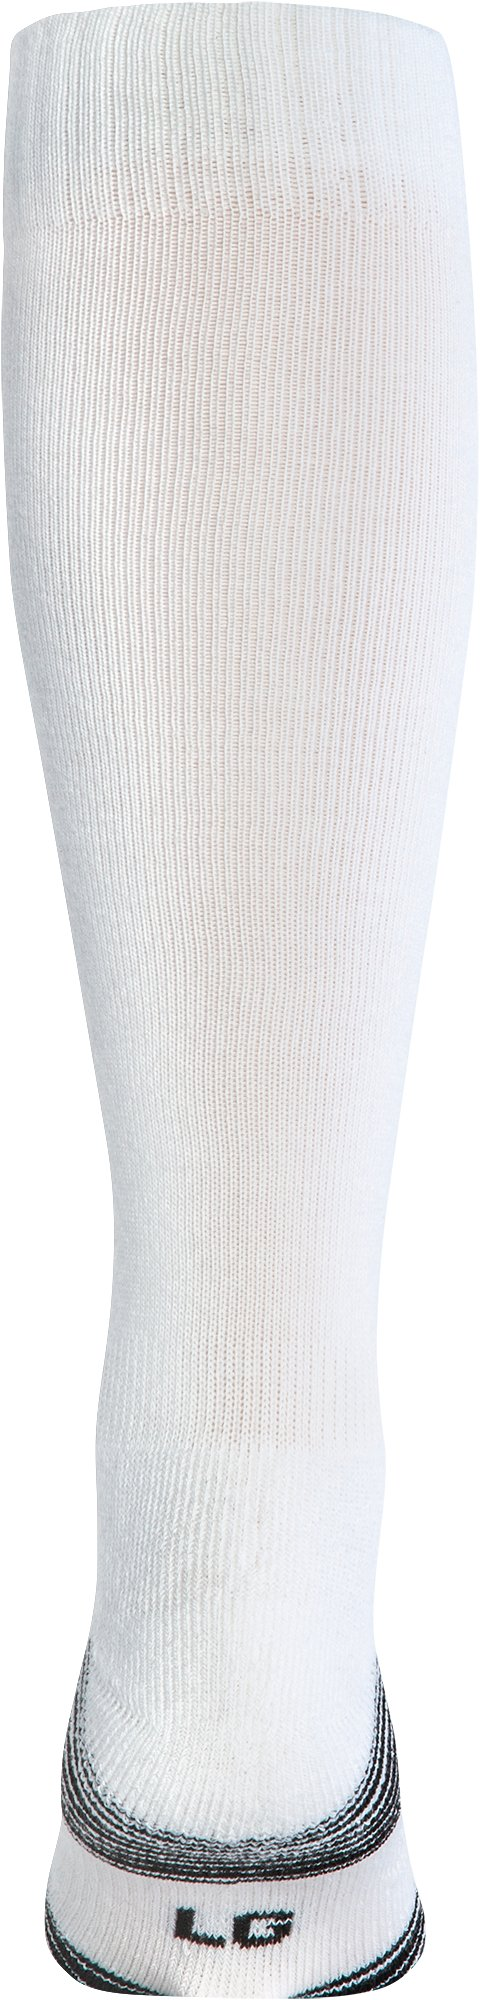 UA Over-The-Calf Team Socks, White